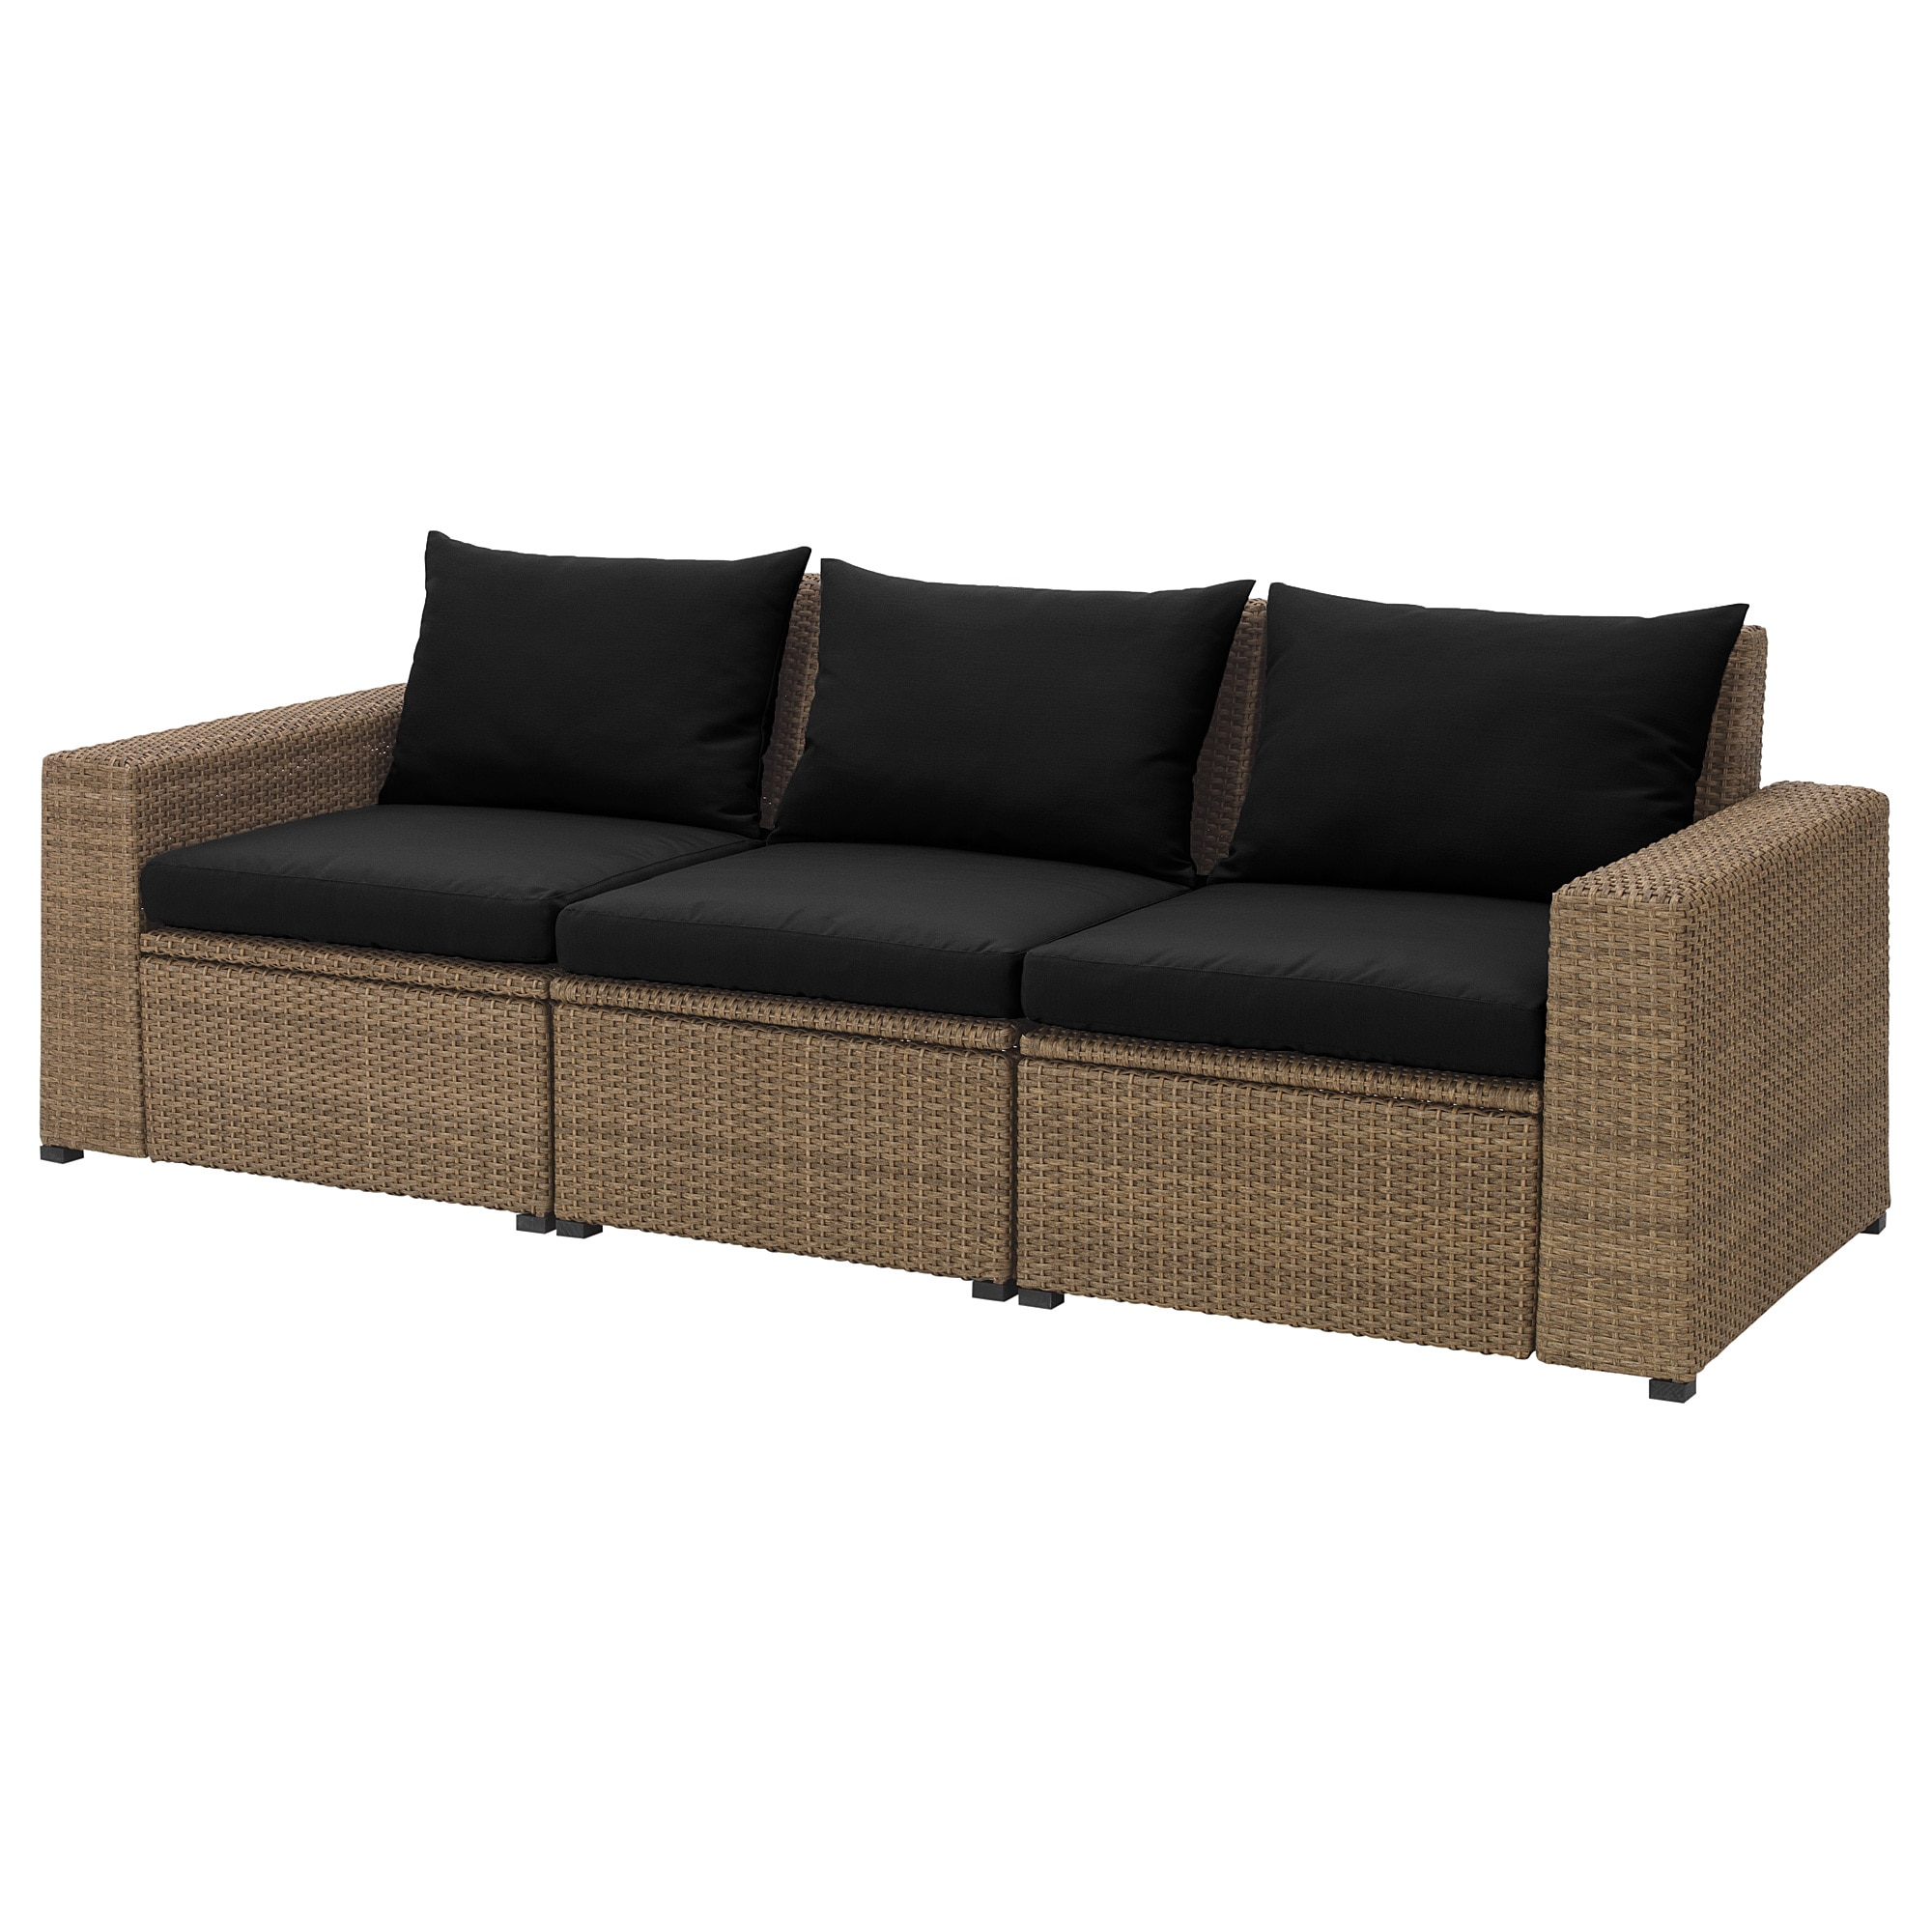 3-seat modular sofa, outdoor SOLLERÖN brown, Hållö black